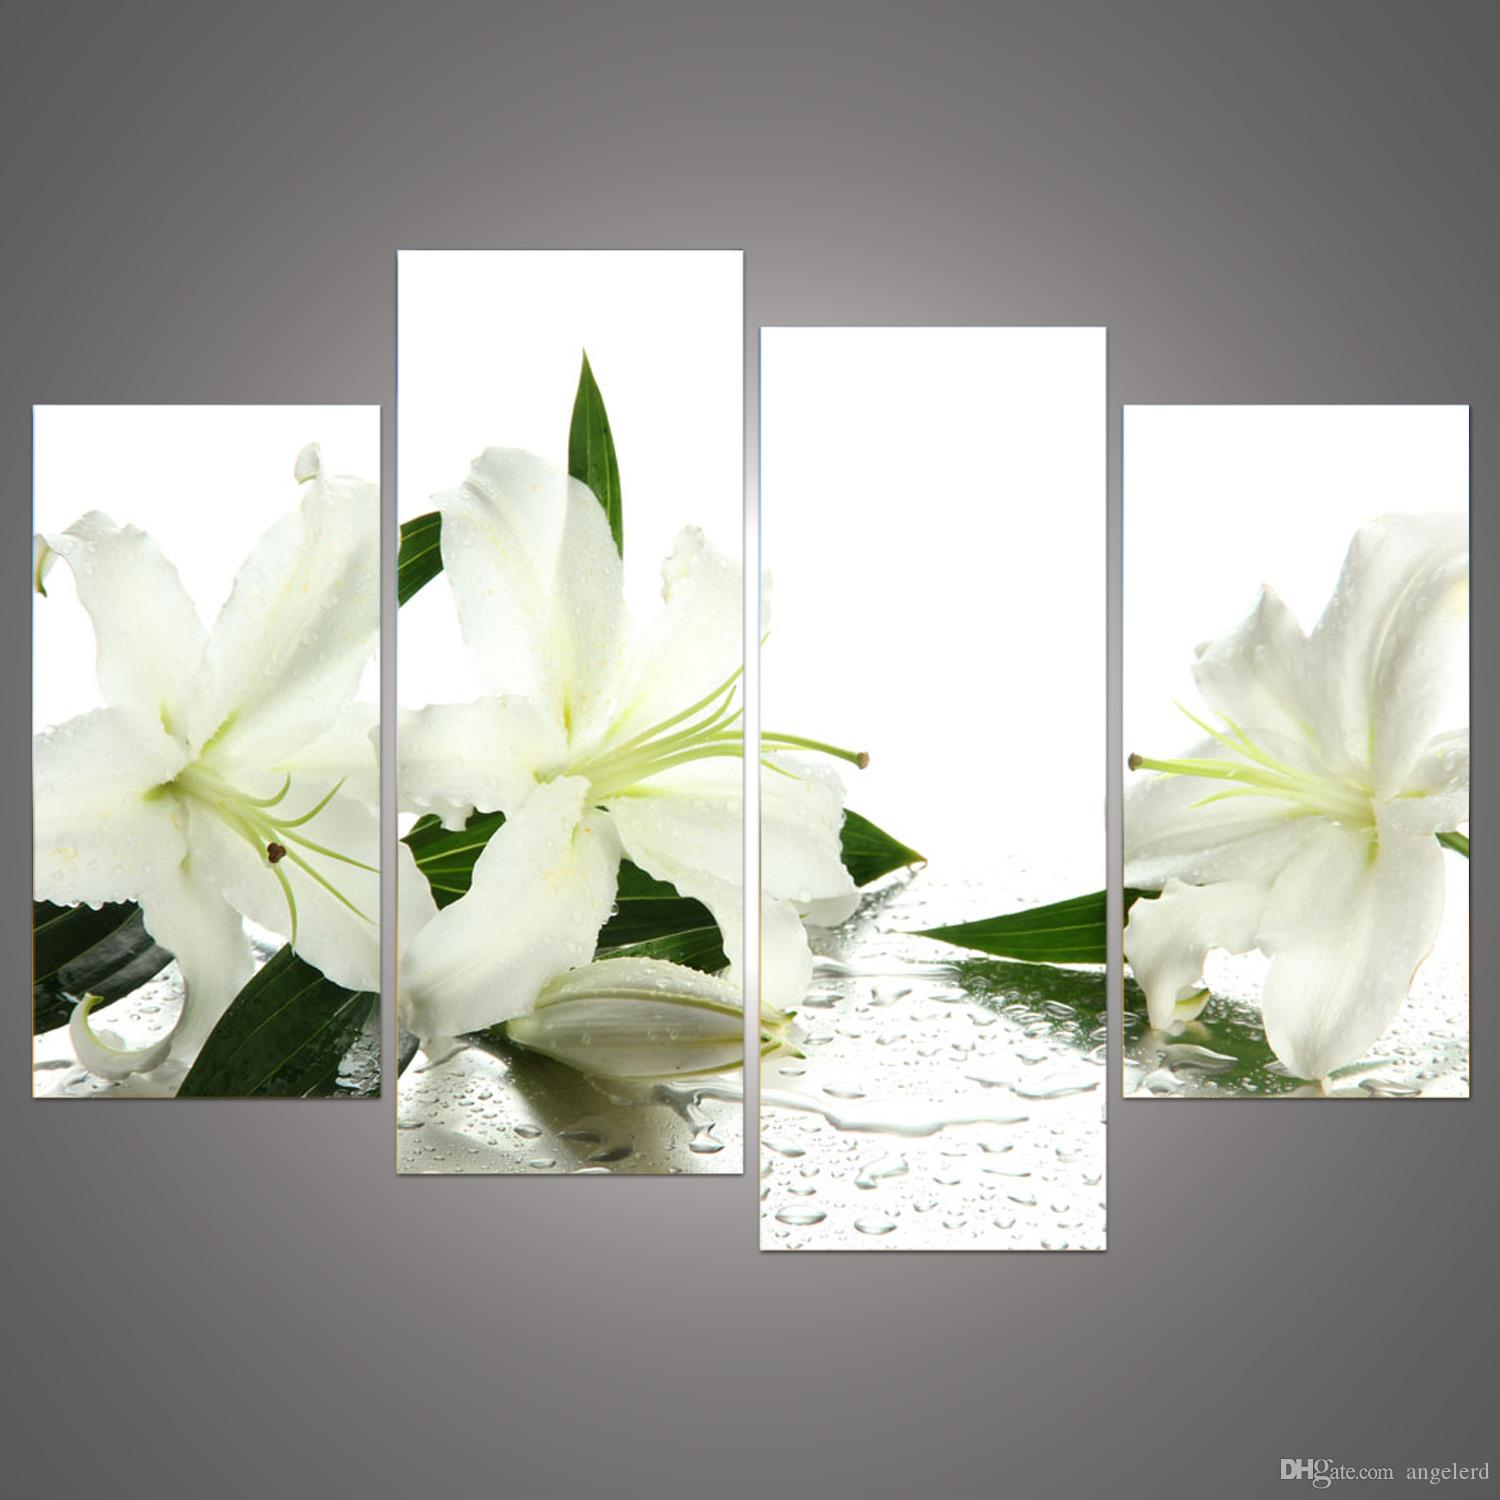 Online cheap 4 panels white flowers painting canvas wall art picture online cheap 4 panels white flowers painting canvas wall art picture home decoration living room canvas print modern painting h055 by angelerd dhgate mightylinksfo